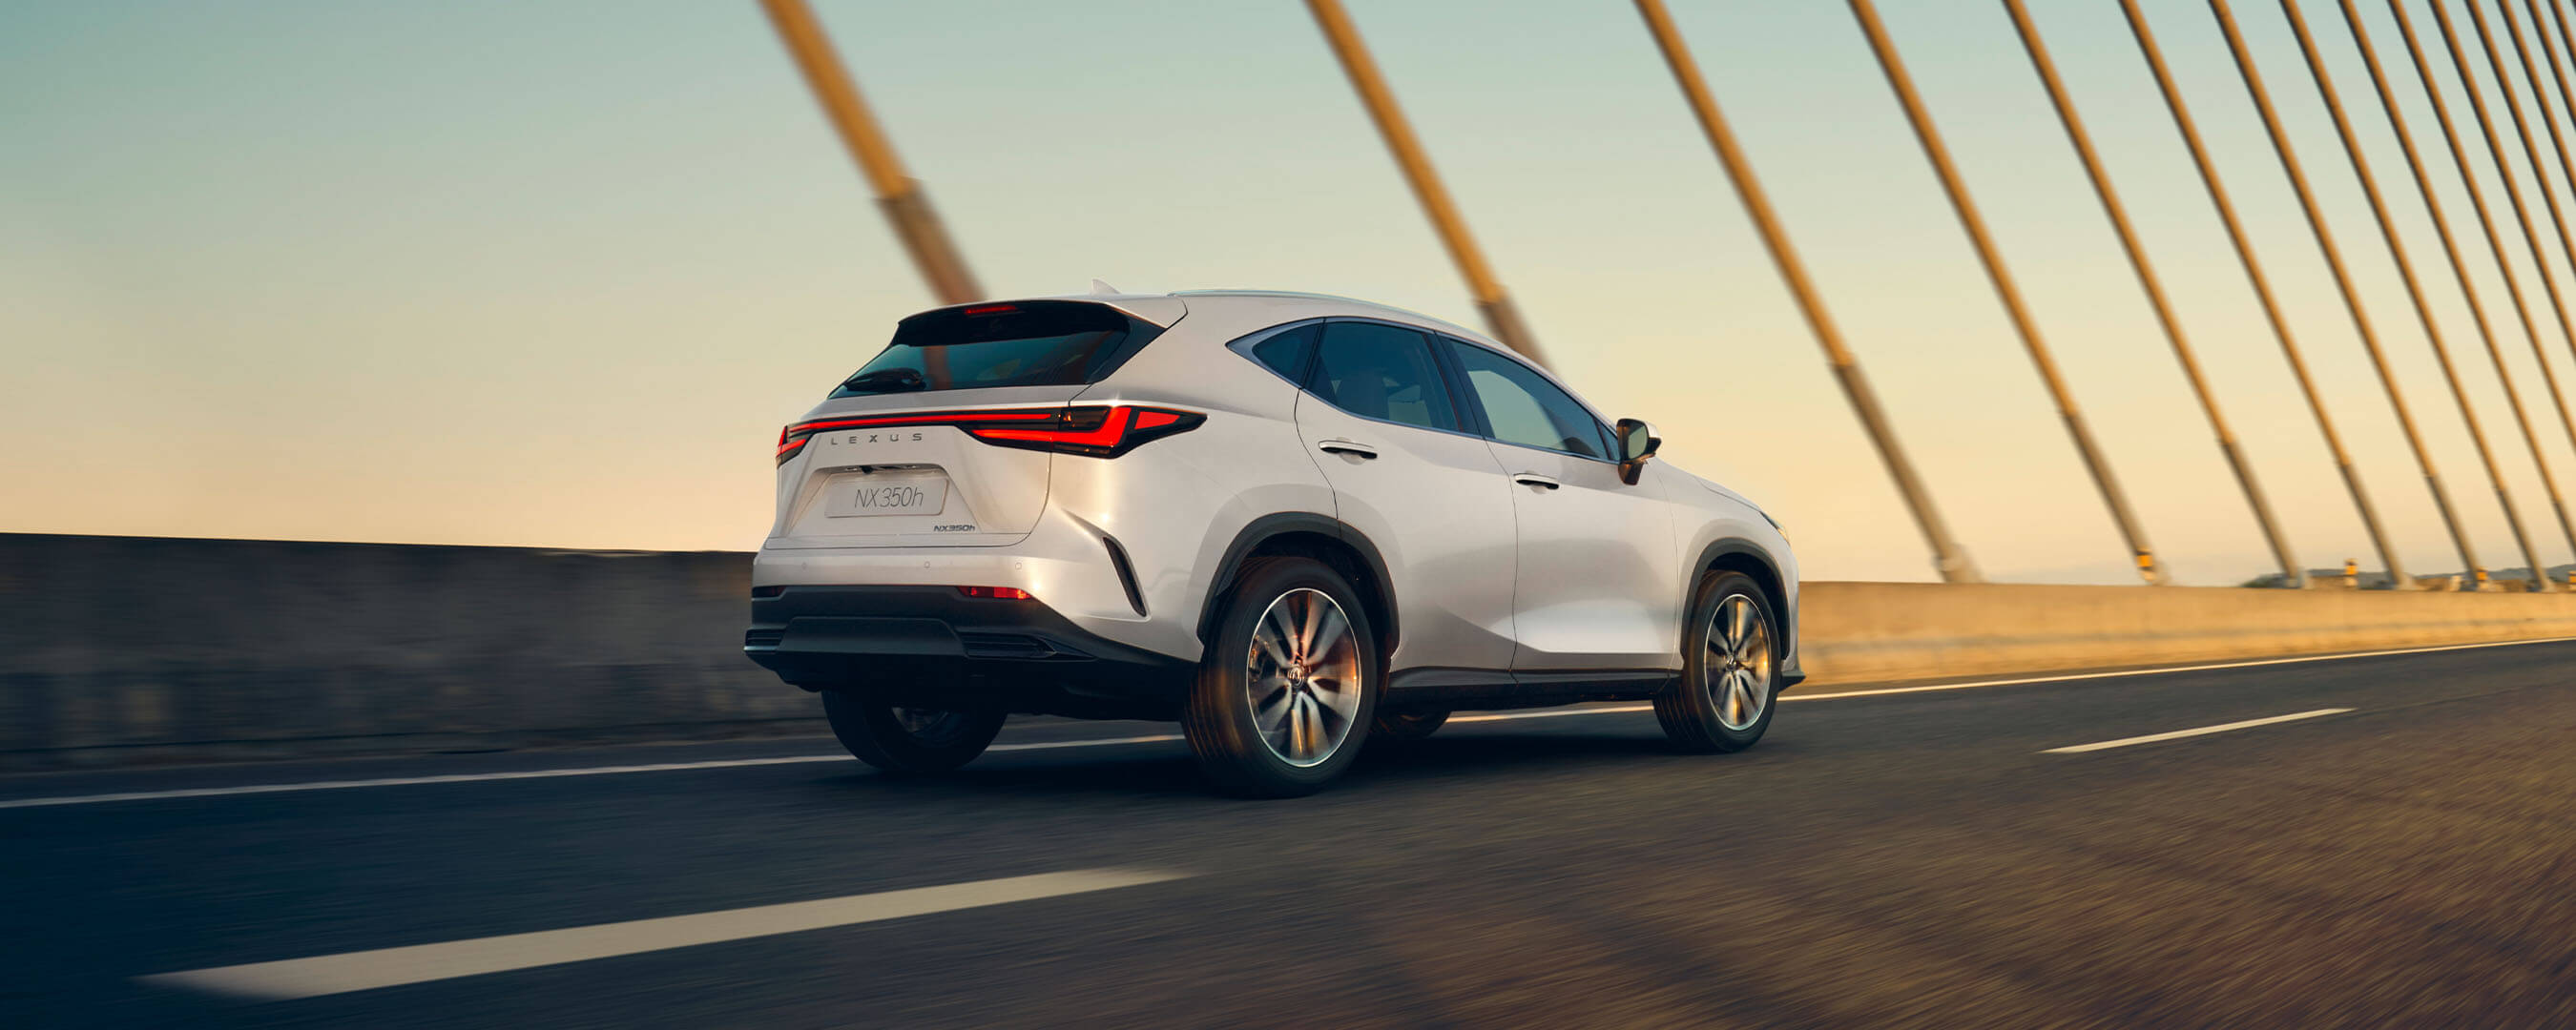 2021 lexus nx overview experience exterior back